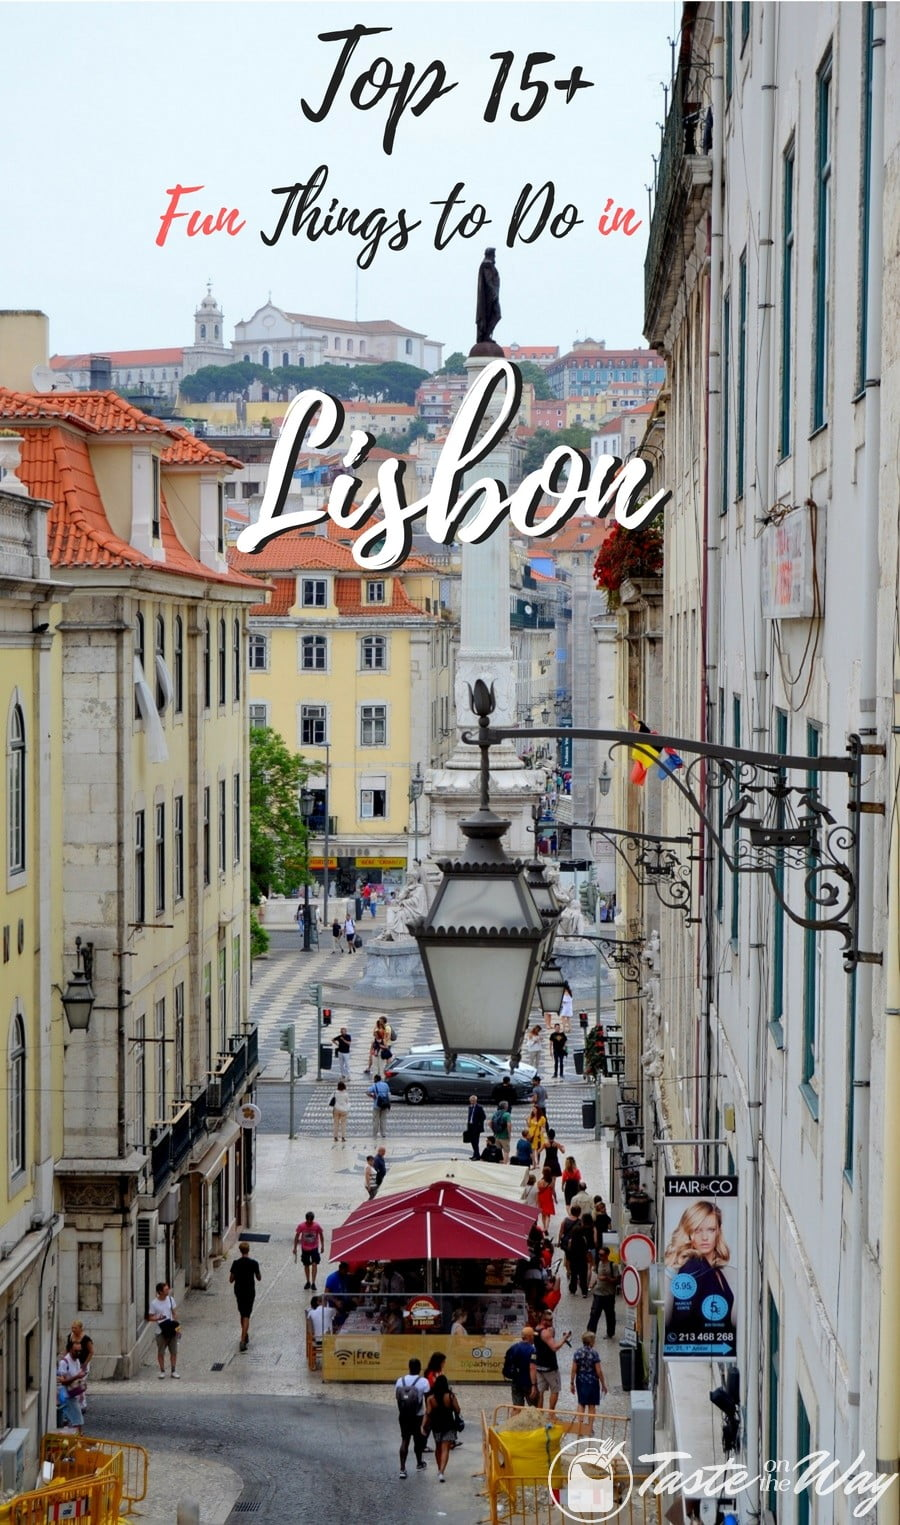 Top 15+ Best Things to Do in Lisbon, Portugal - Check out the top 15+ fun #thingstodo in #Lisbon, #Portugal #travel #photography @tasteontheway